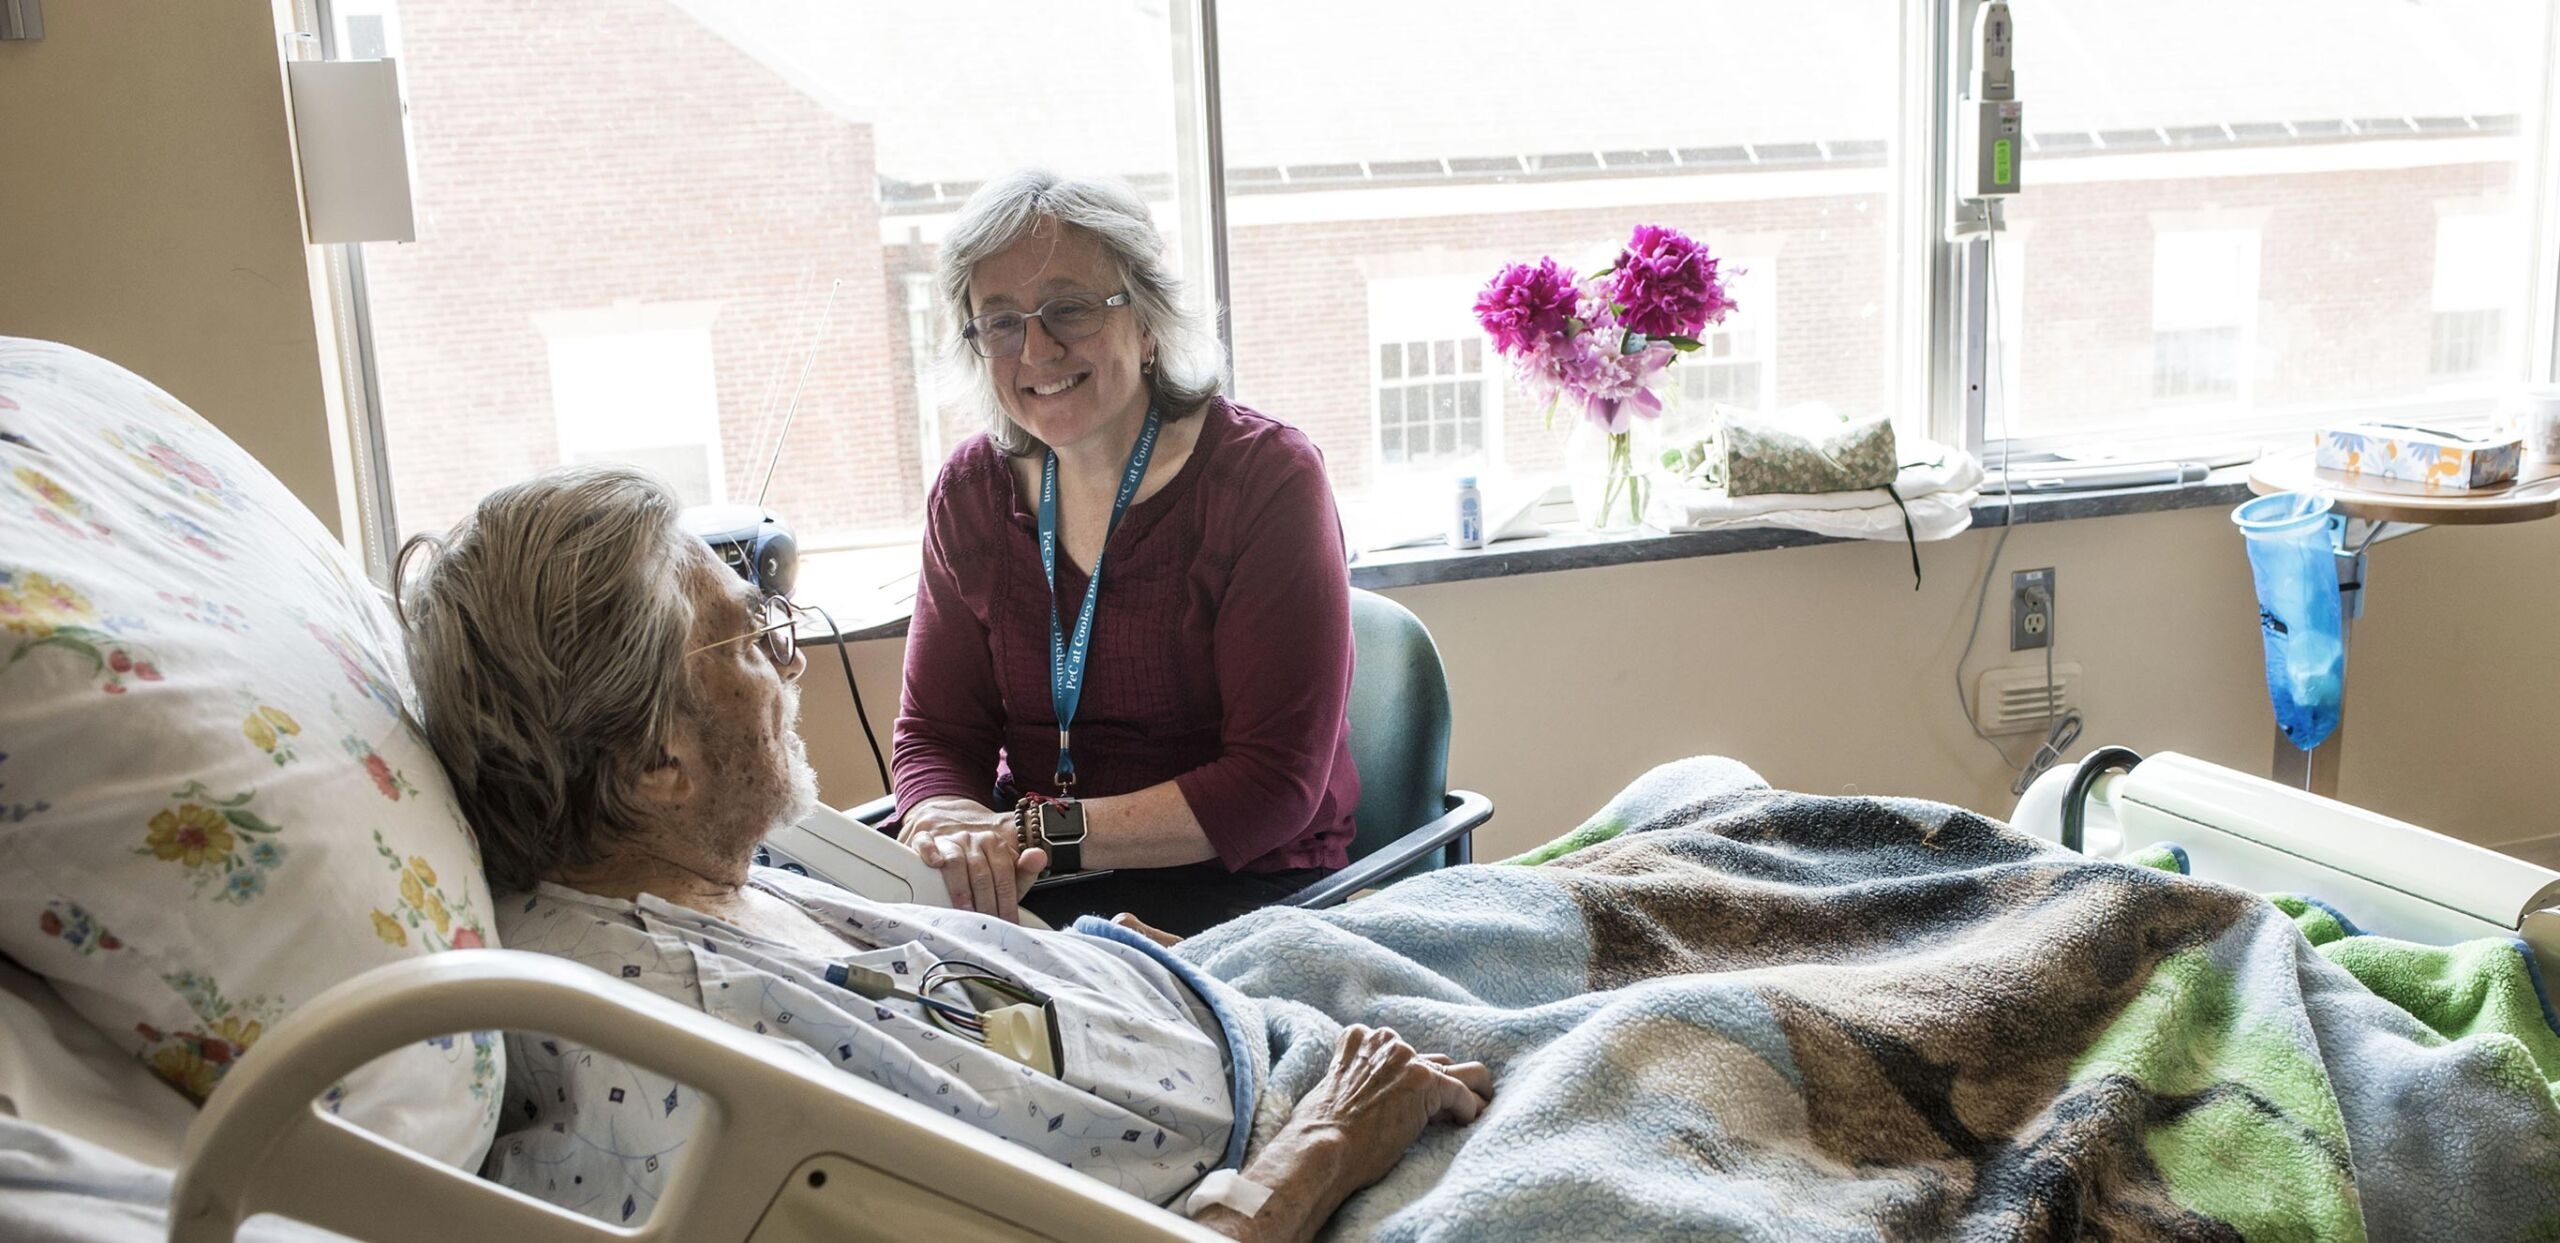 Cooley Dickinson Case Manager talks to an inpatient.